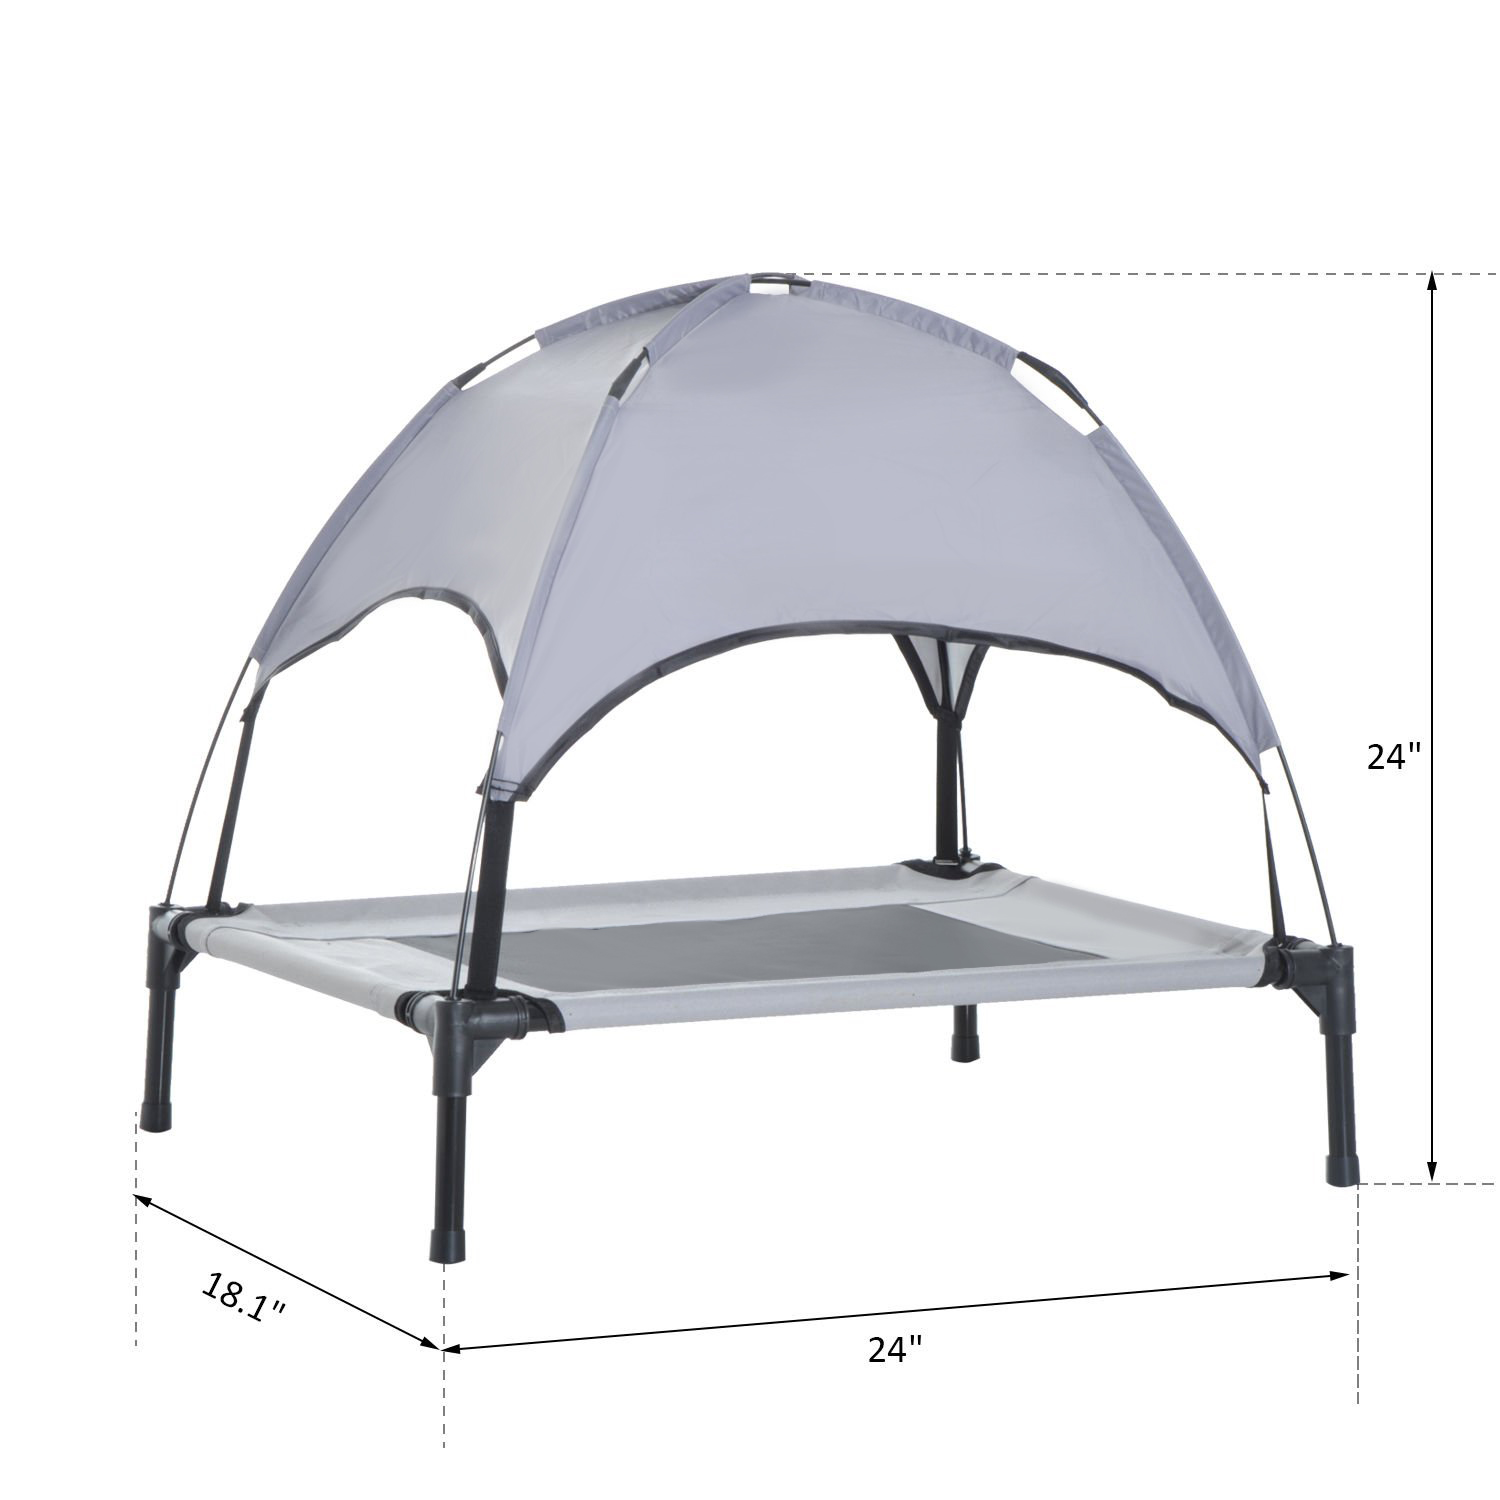 PawHut-Elevated-Pet-Bed-Dog-Foldable-Cot-Tent-Canopy-Instant-Shelter-Outdoor thumbnail 3